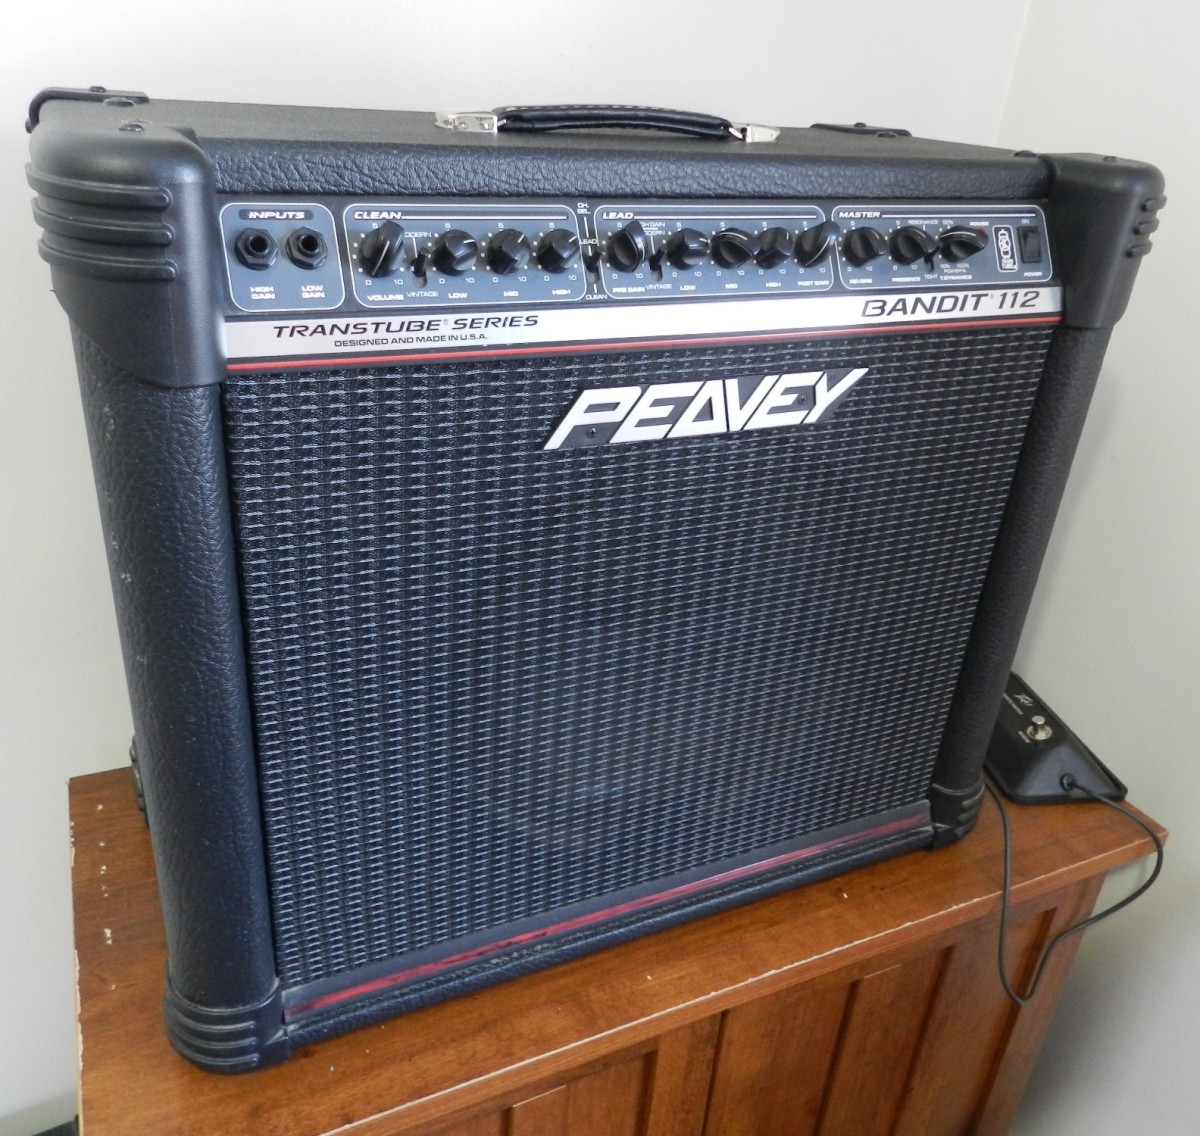 My 80-watt solid-state Peavey Bandit is plenty loud.